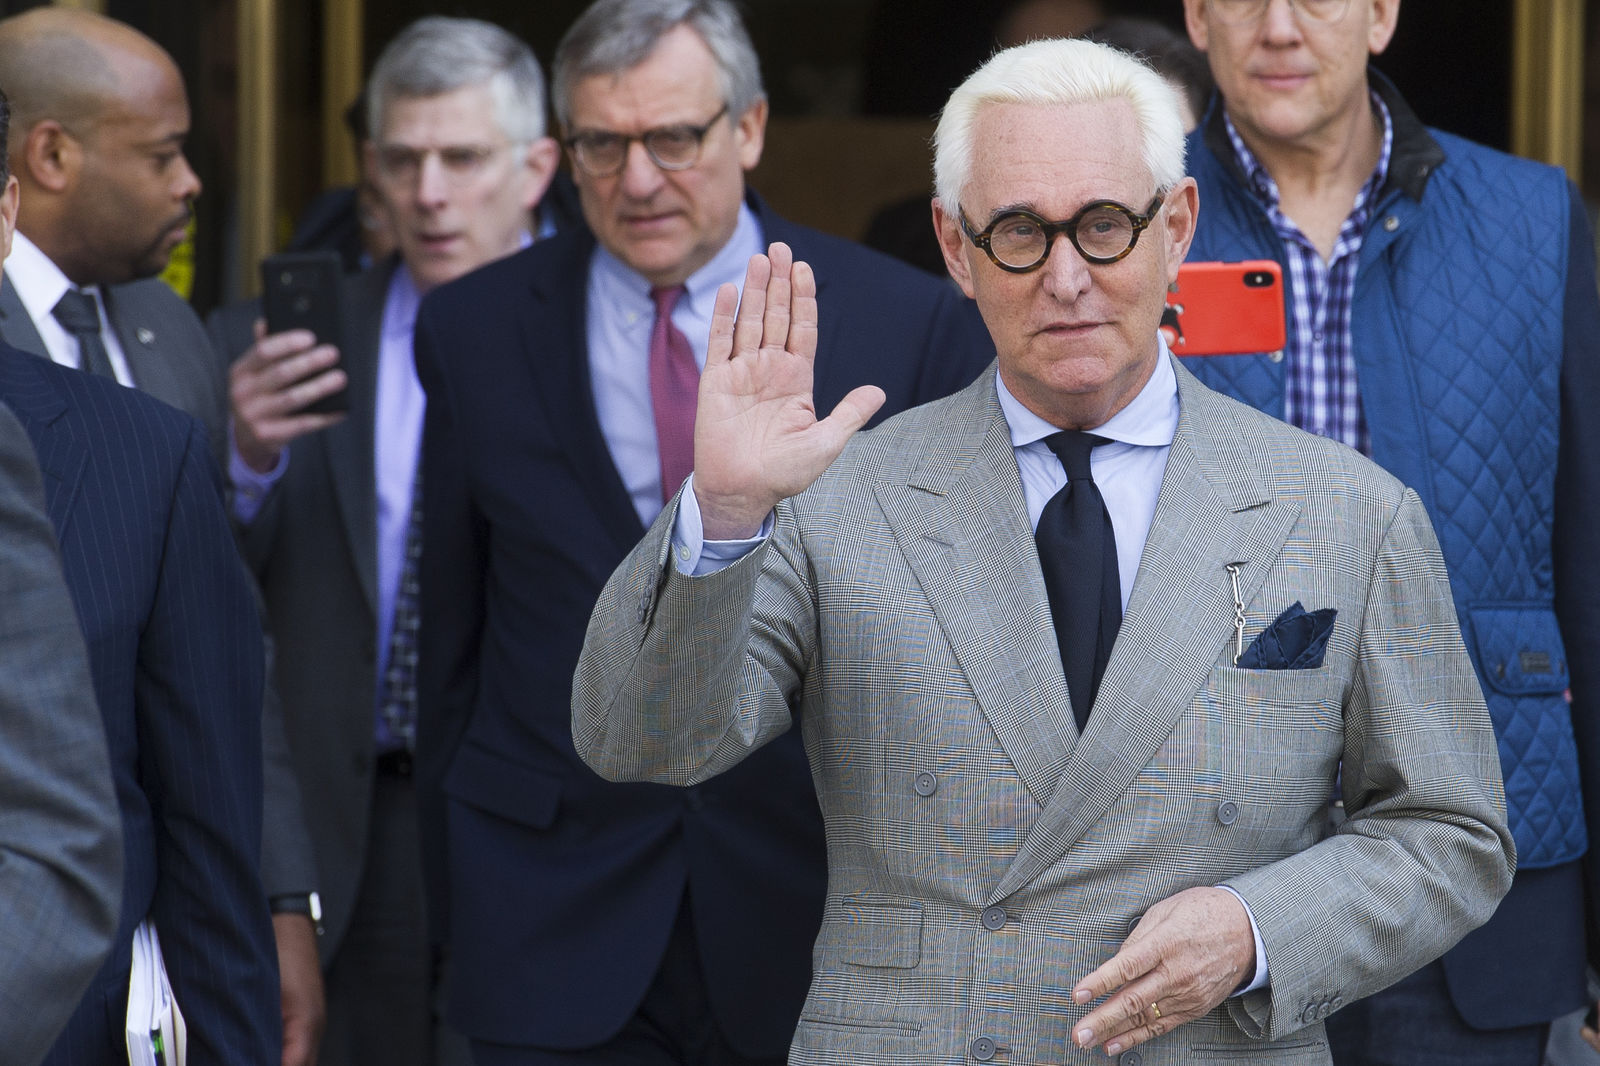 FILE - In this Thursday, March 14, 2019, file photo, Roger Stone, an associate of President Donald Trump, leaves U.S. District Court after a court status conference on his seven charges: one count of obstruction of an official proceeding, five counts of false statements and one count of witness tampering, in Washington. (AP Photo/Cliff Owen, File)